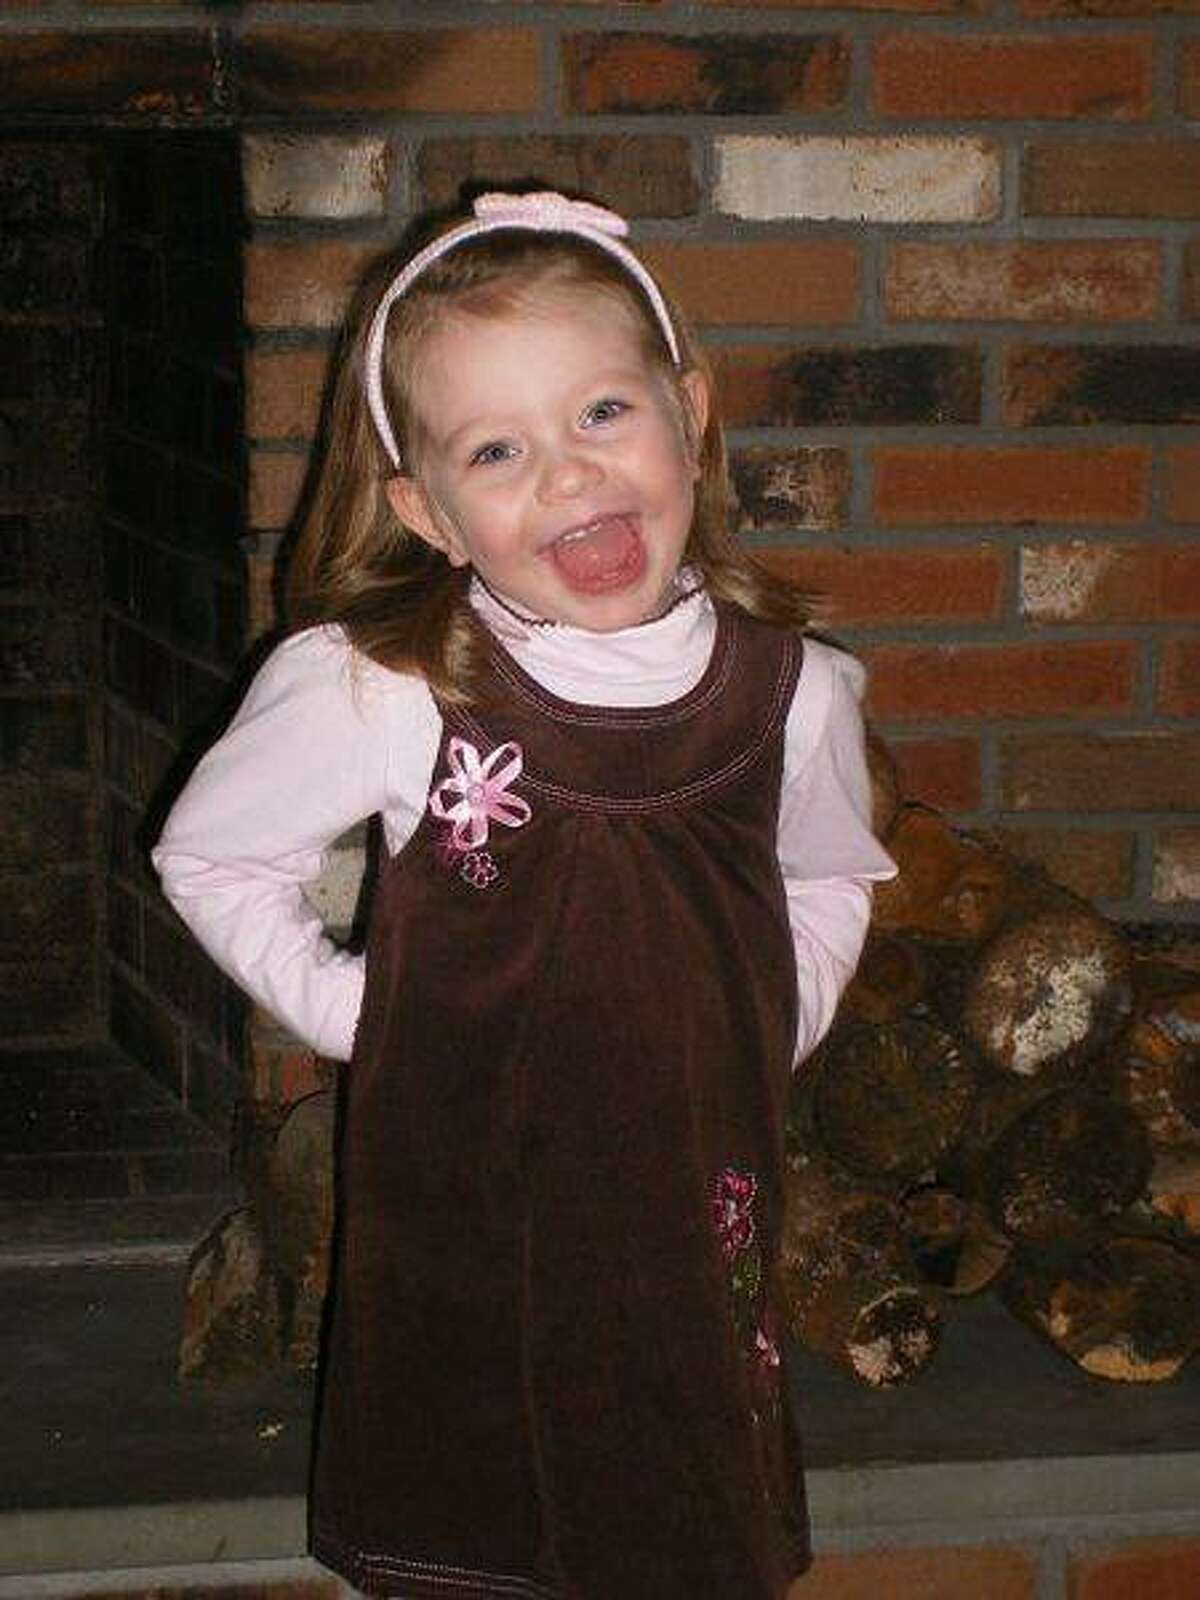 Olivia Engel was to be an angel in a nativity play Facebook photo